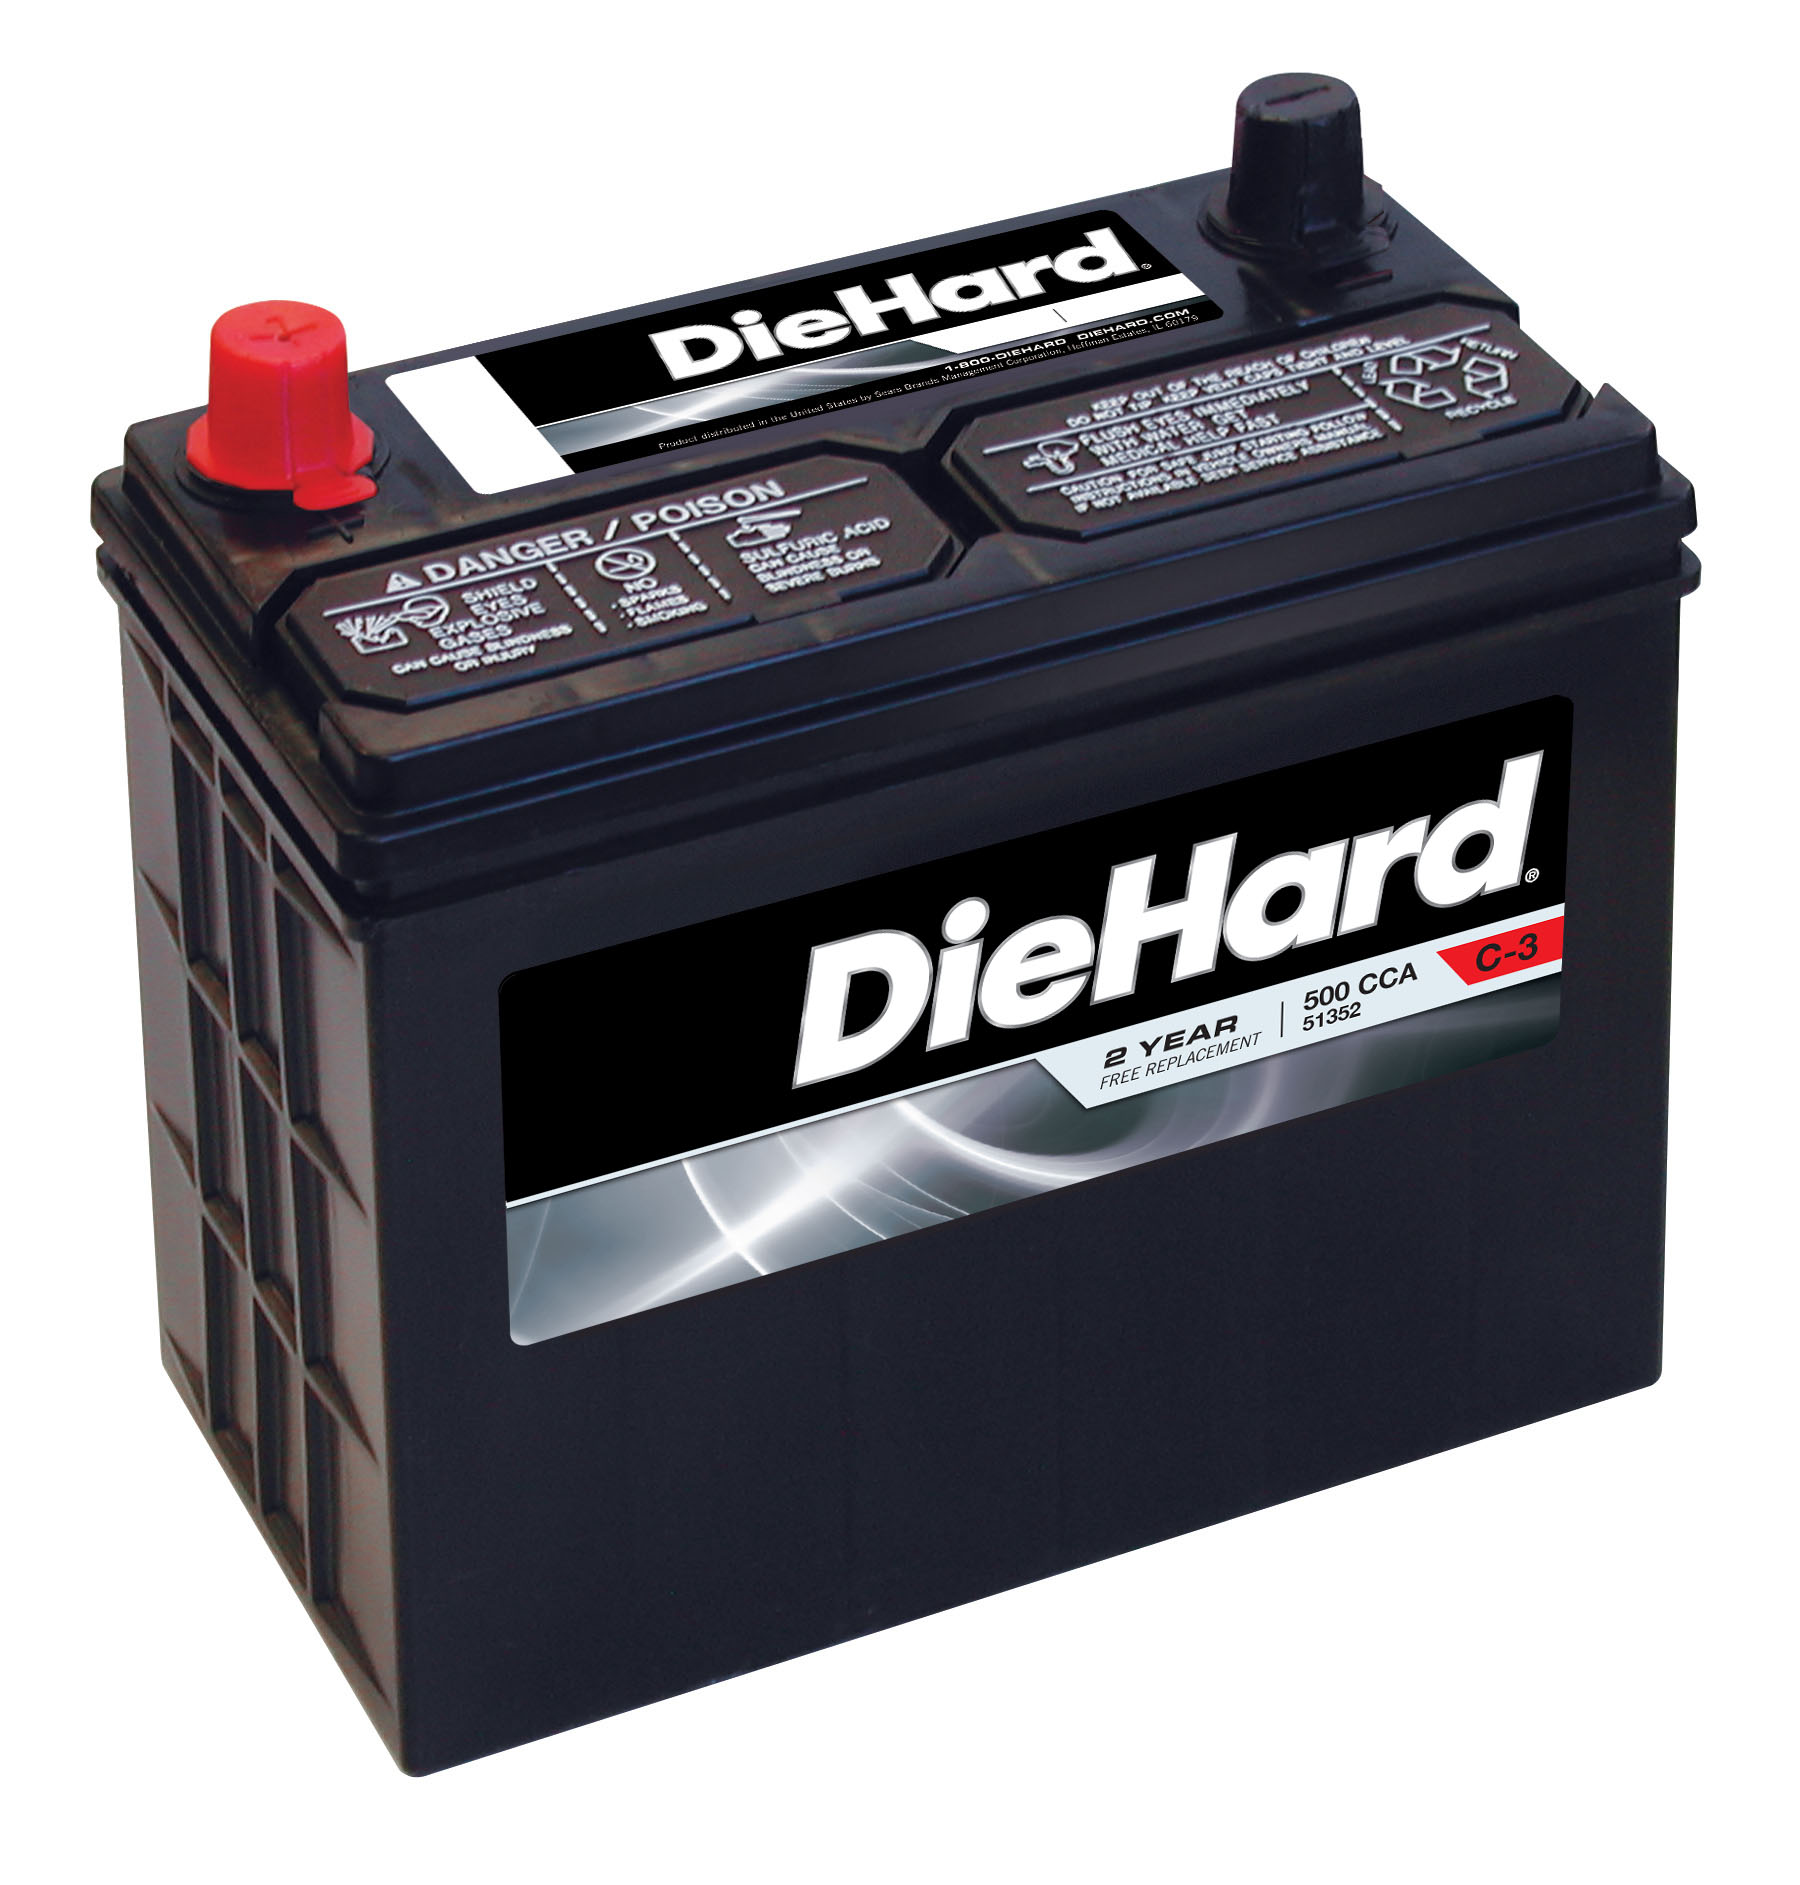 Diehard Automotive Battery - Group Size Jc-51r With Exchange